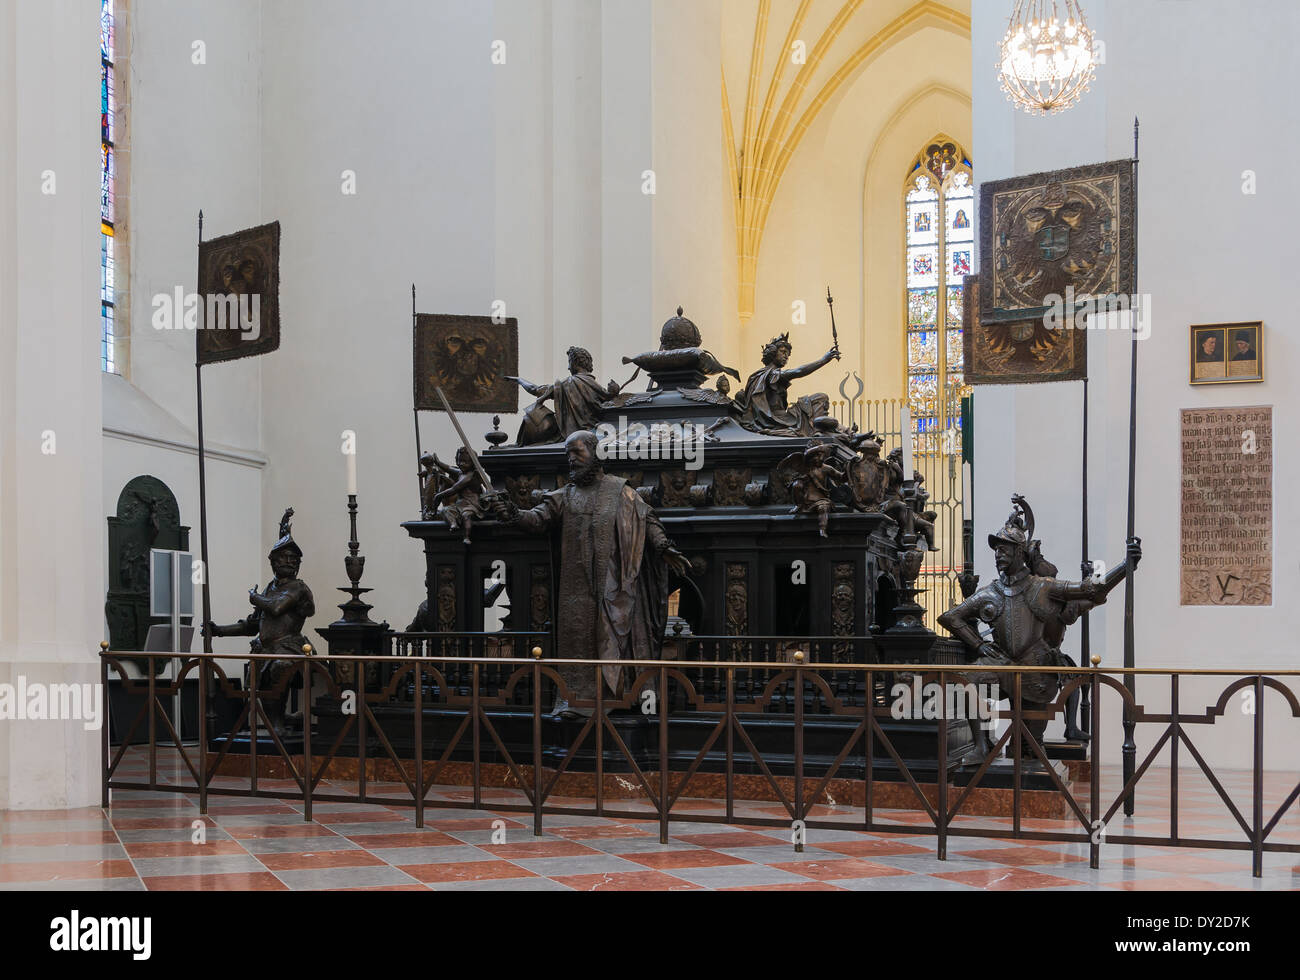 Cenotaph of Louis IV, German Roman Emperor, Cathedral of Munich, Bavaria, Germany. - Stock Image